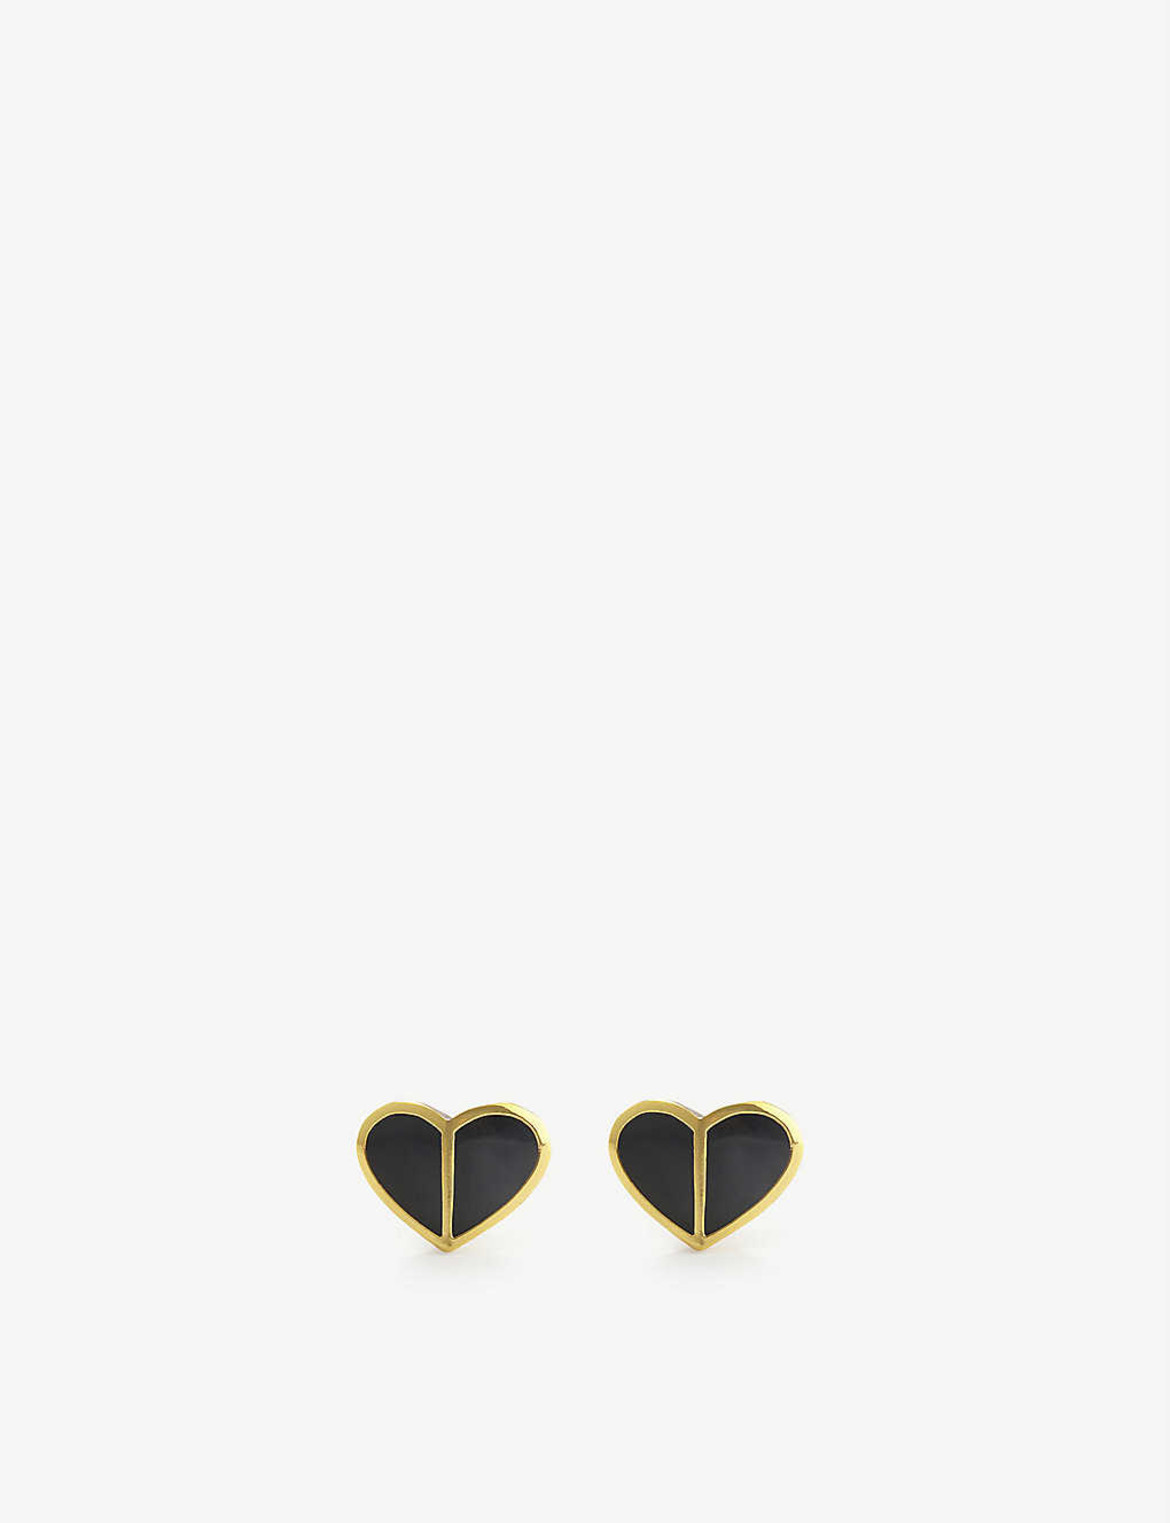 KATE SPADE NEW YORK Heritage Spade Heart stud earrings HK$375